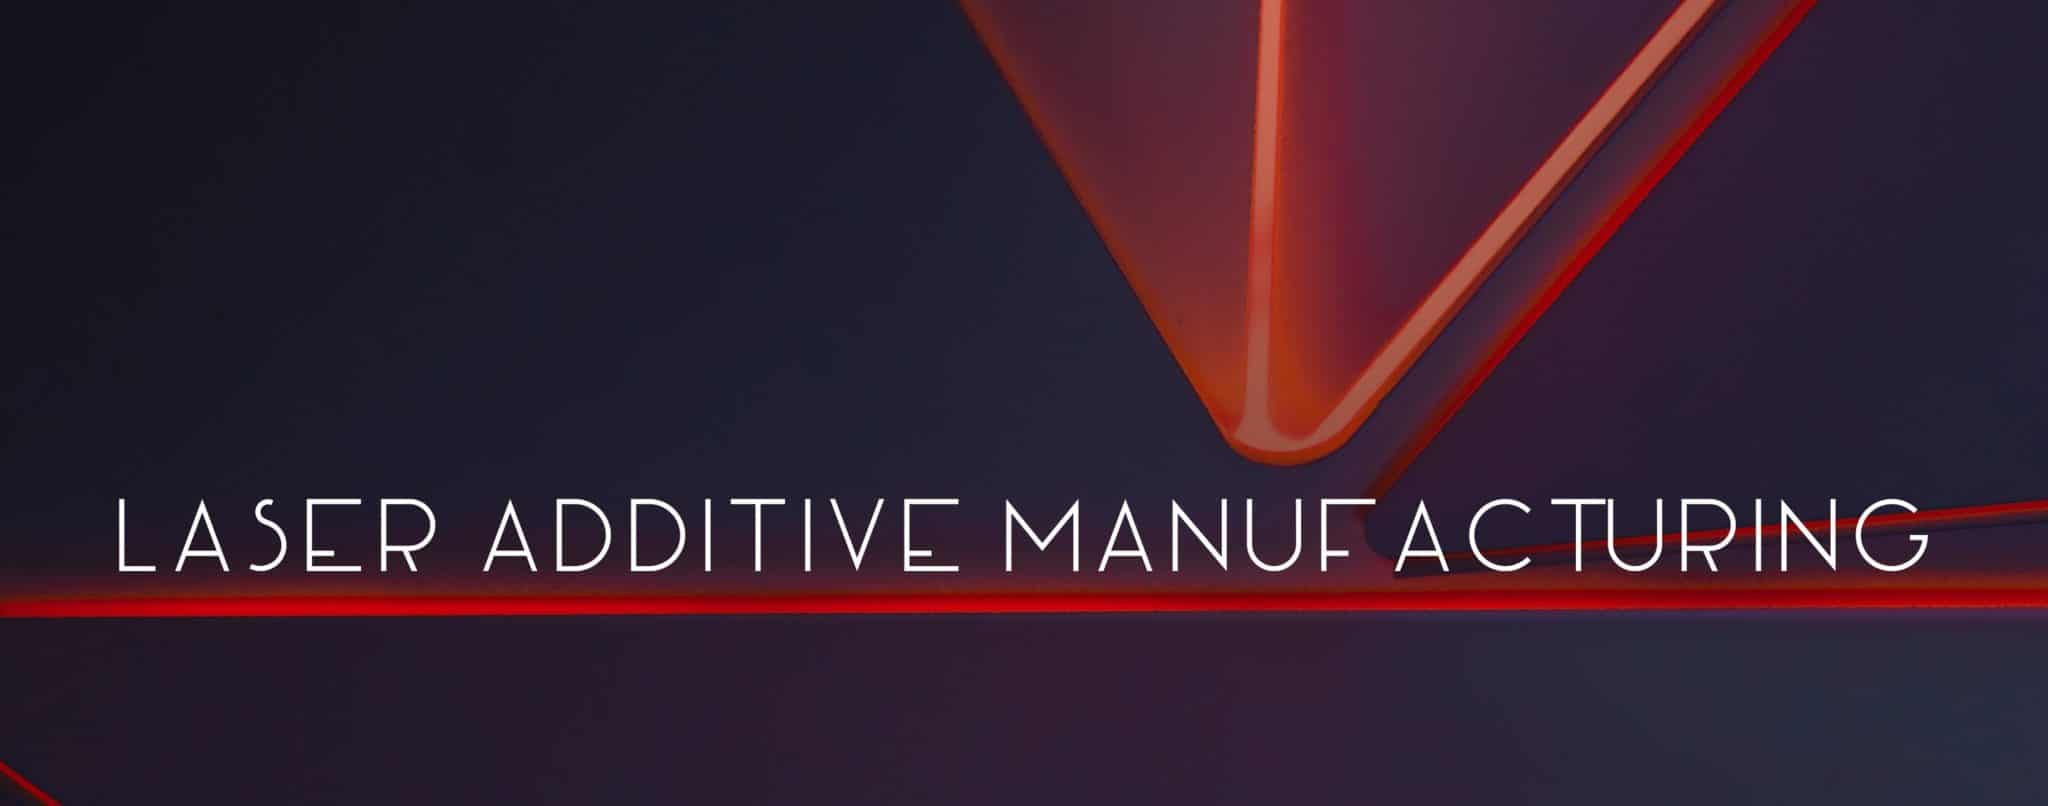 Laser additive manufacturing application note news web banner